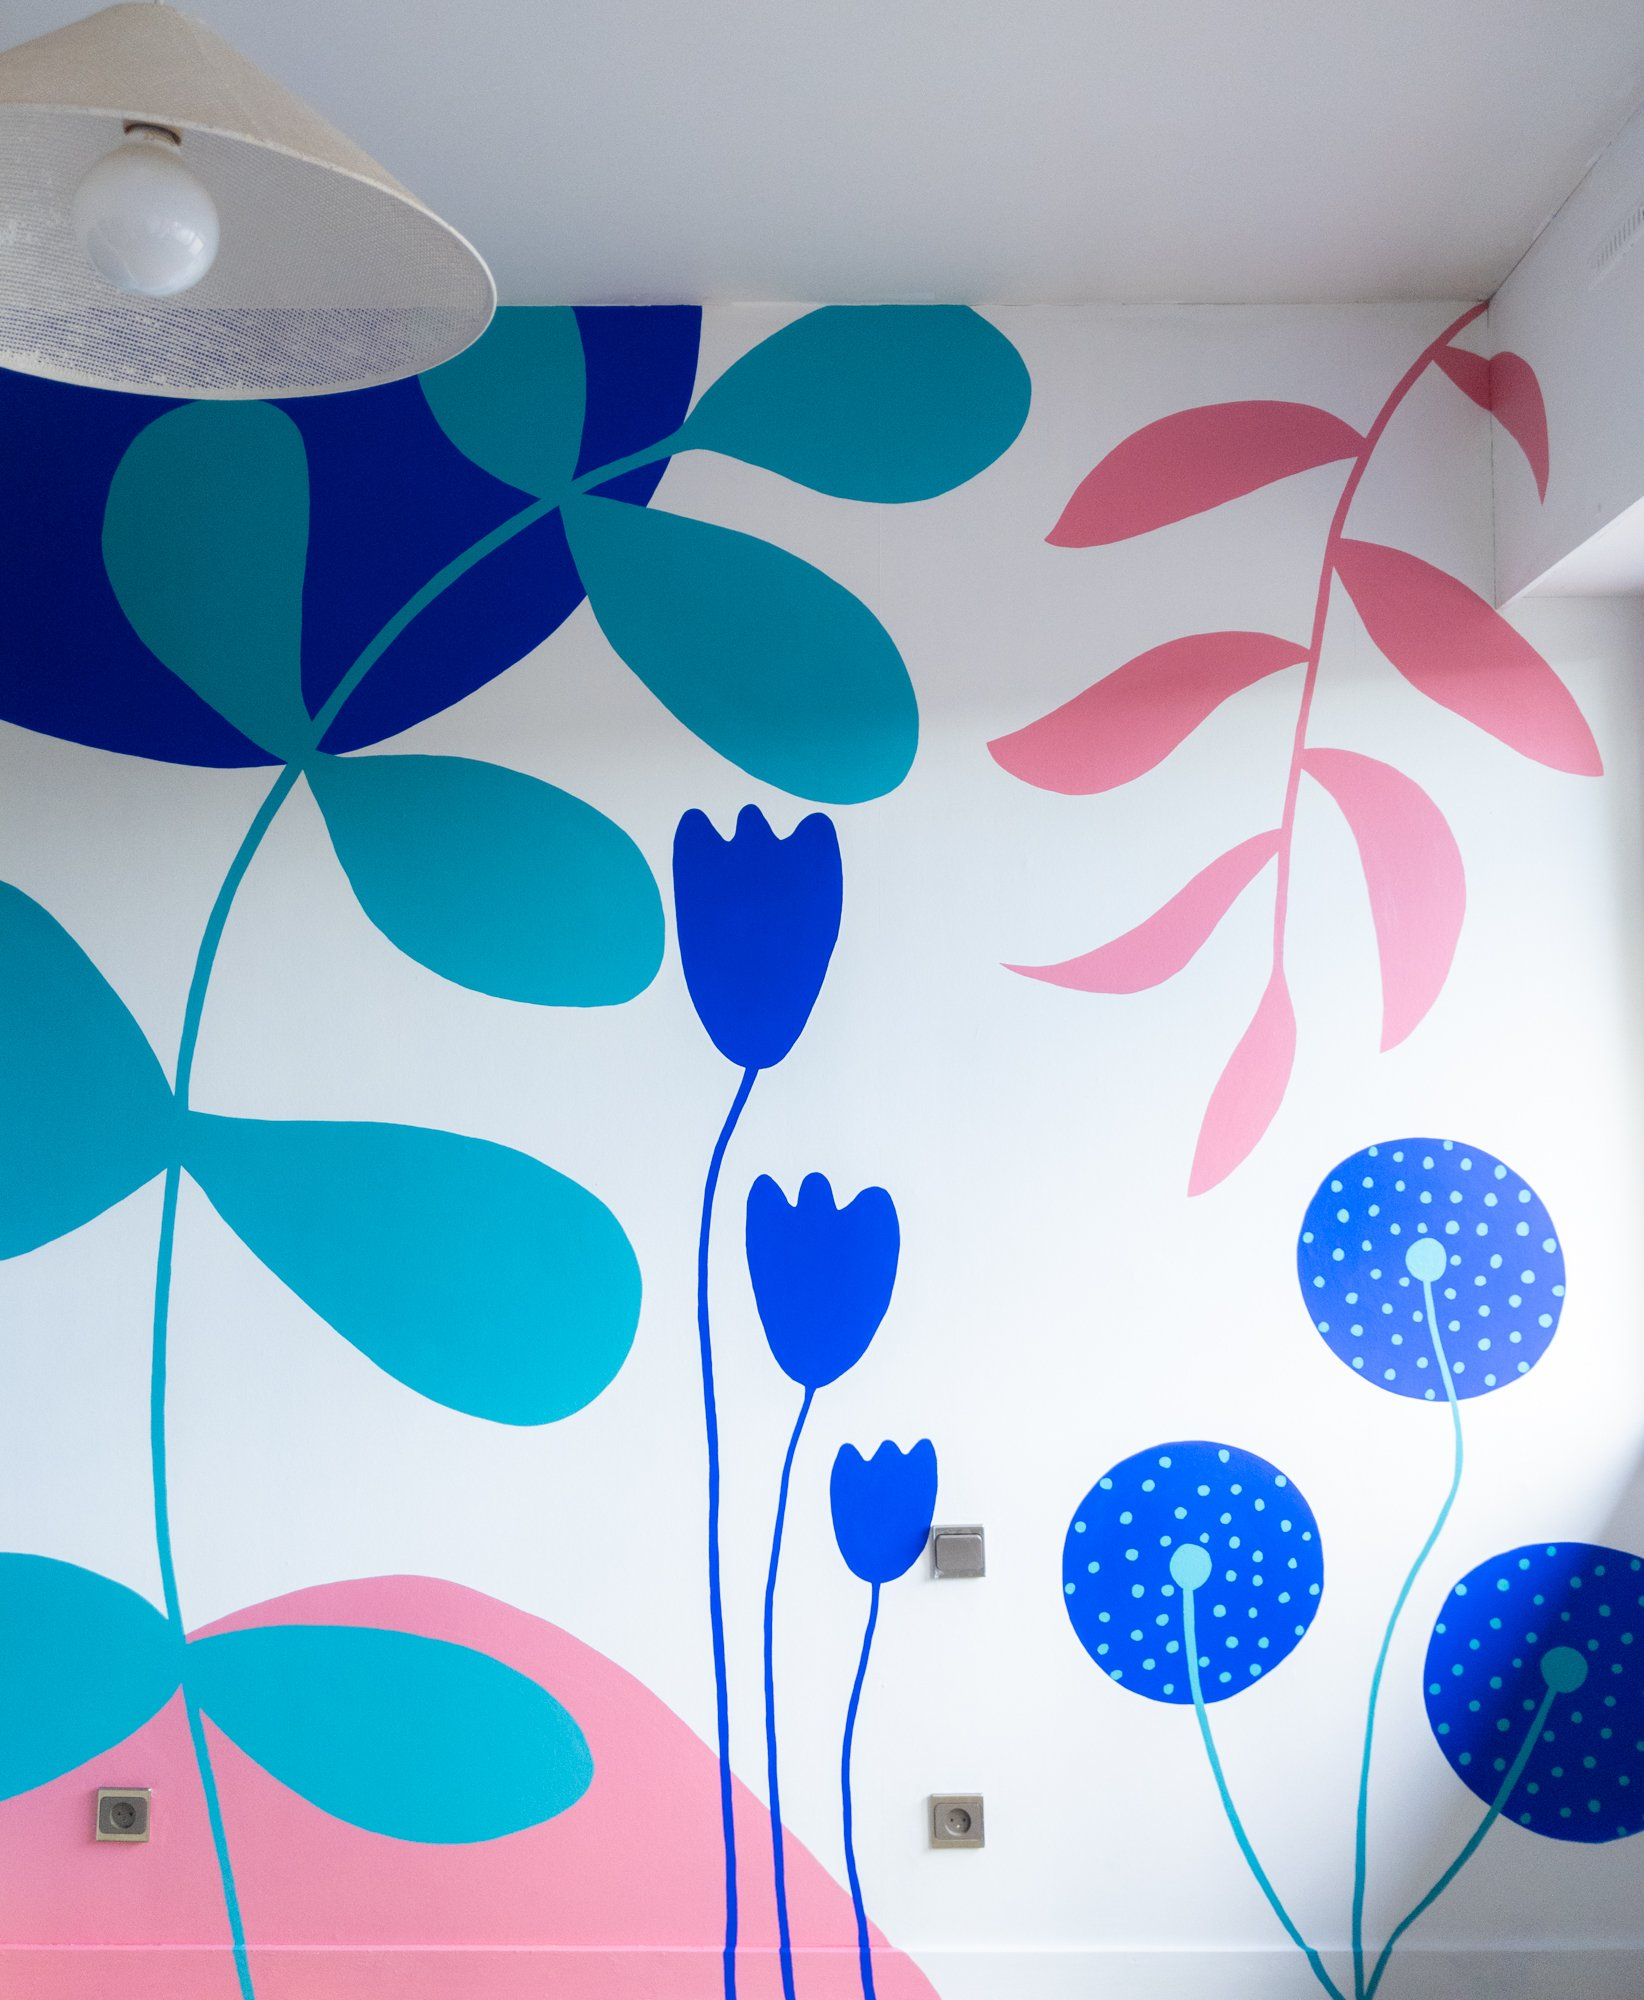 fresque personnalisée / withalovelikethat.fr